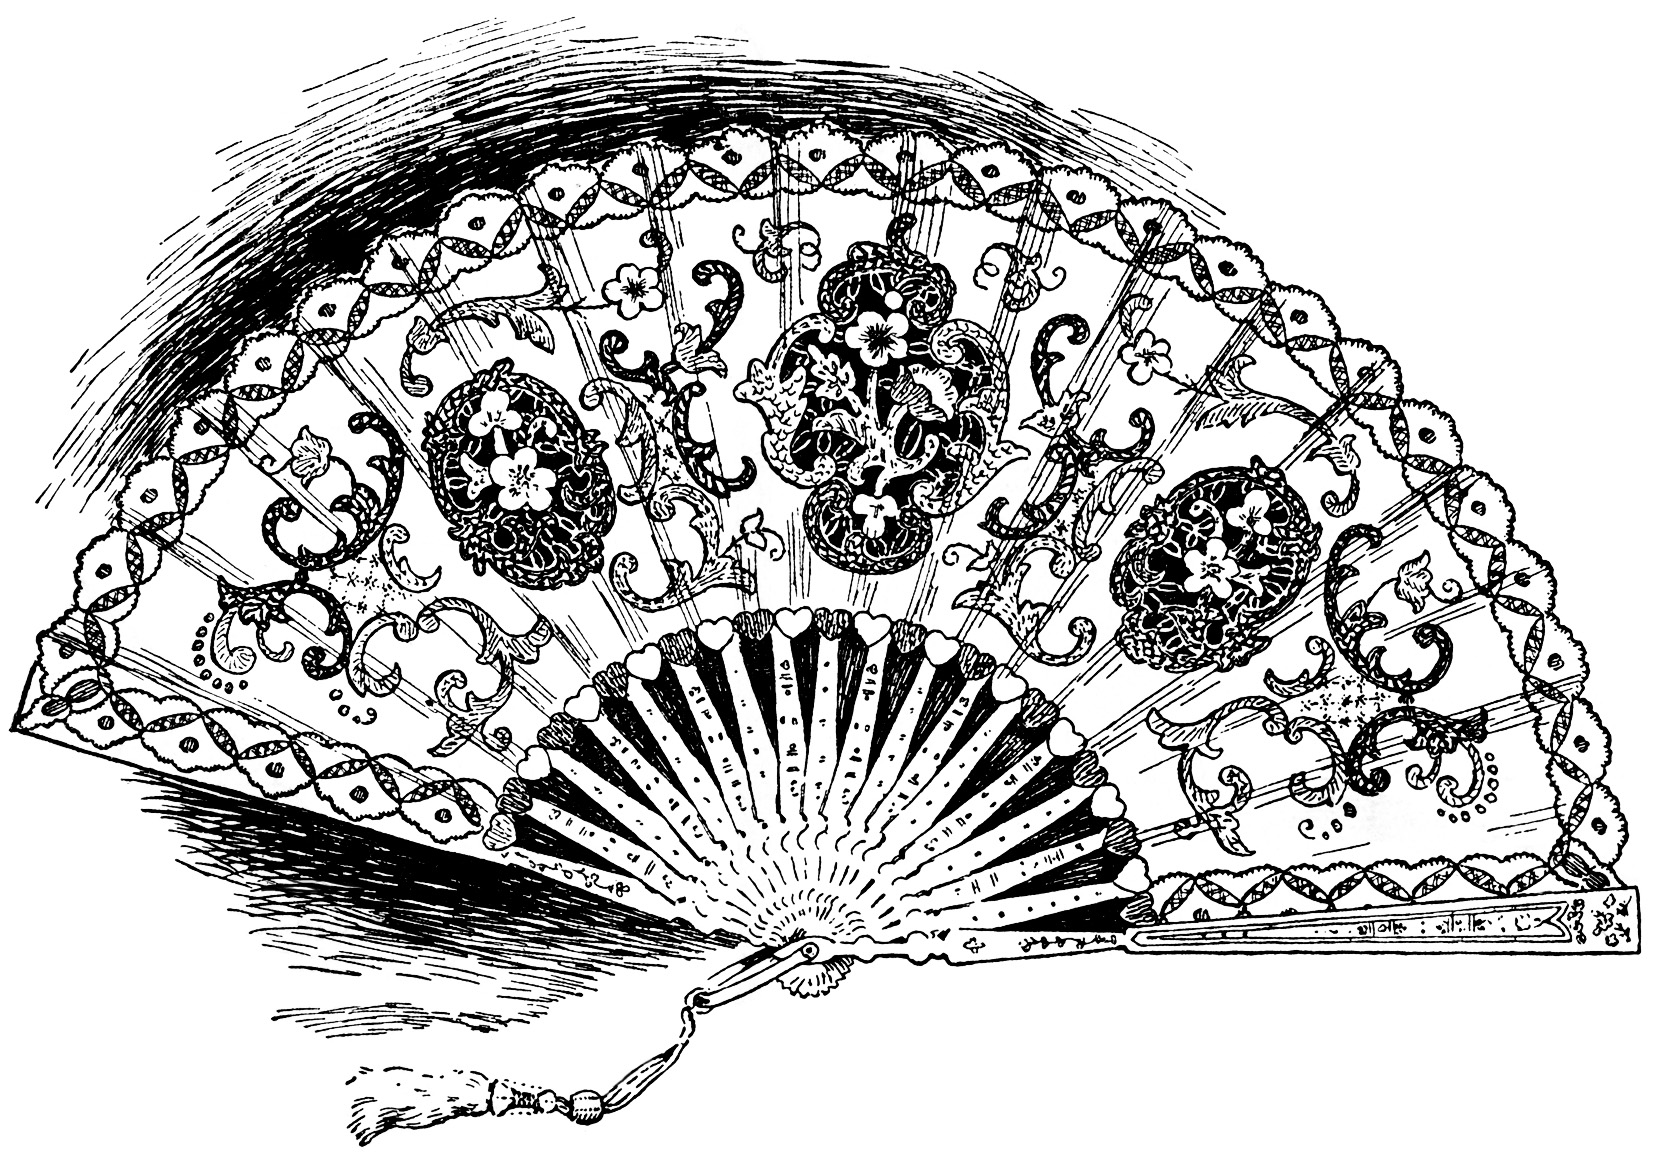 vintage clipart fan, ladies hand held lace fan, victorian fan graphic, antique fan, digital woman's fan clip art, free vintage image fan